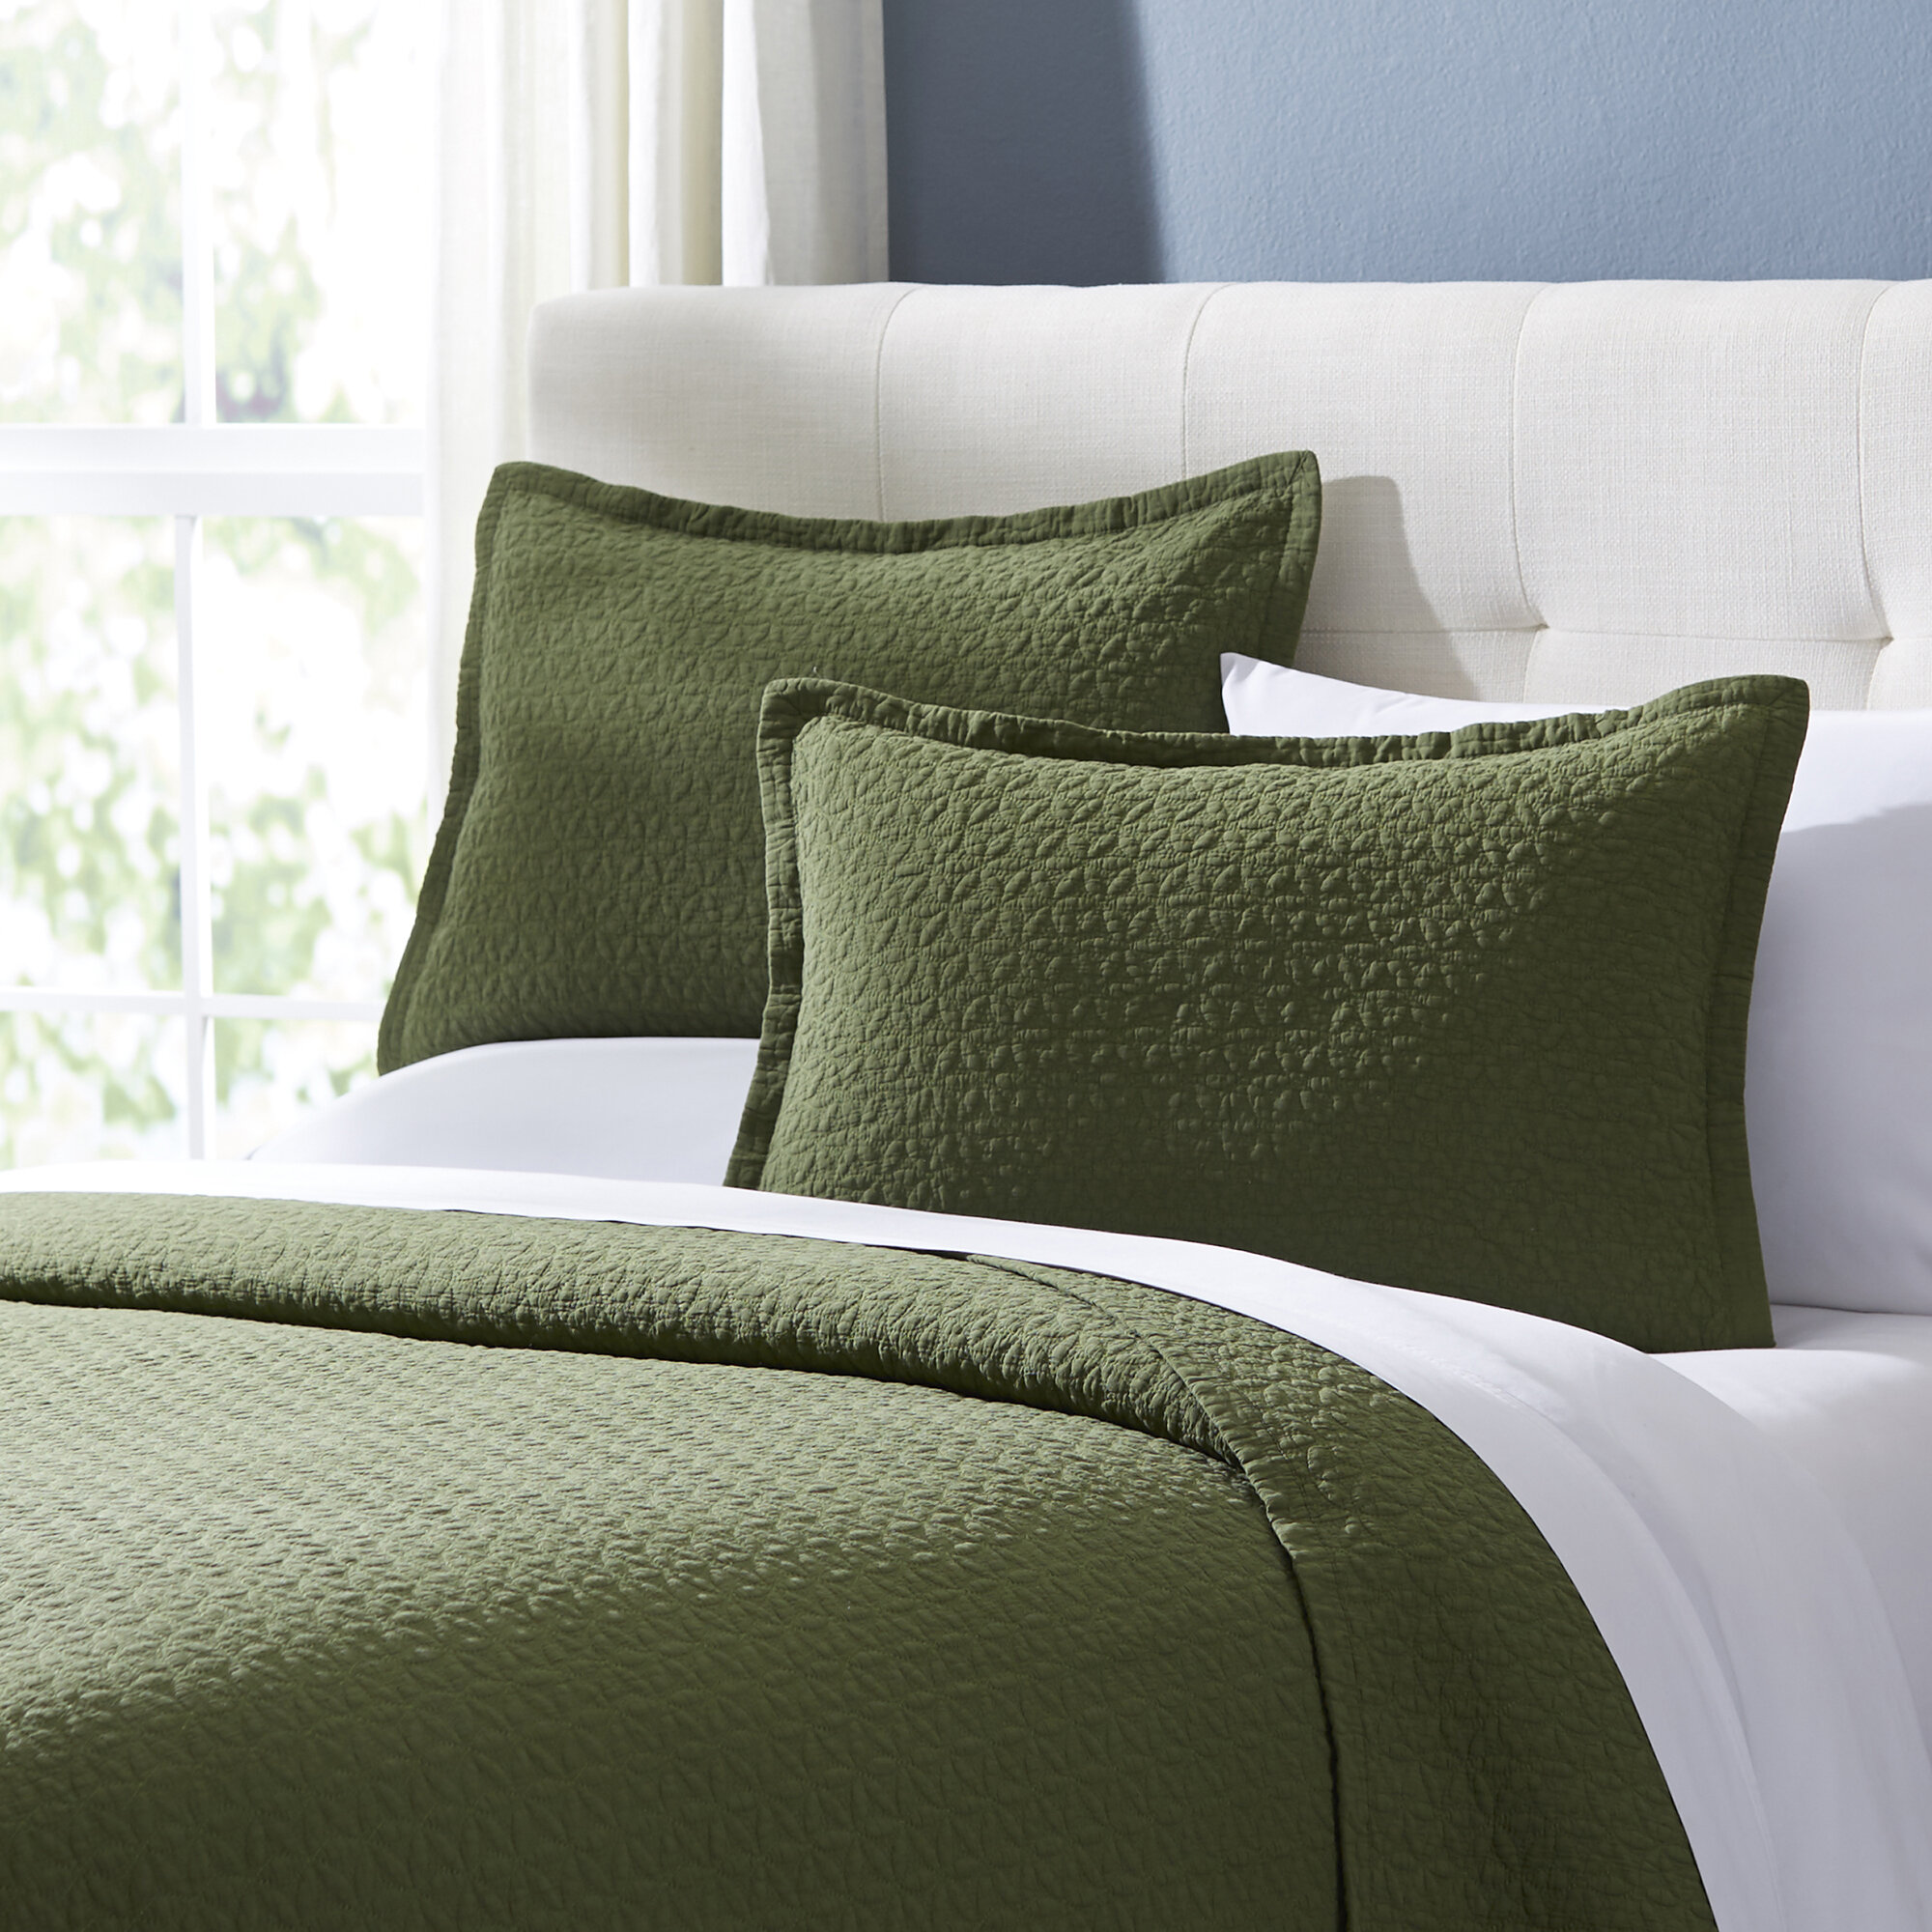 prd duvet expand grasses quilt natural limited corry harry set